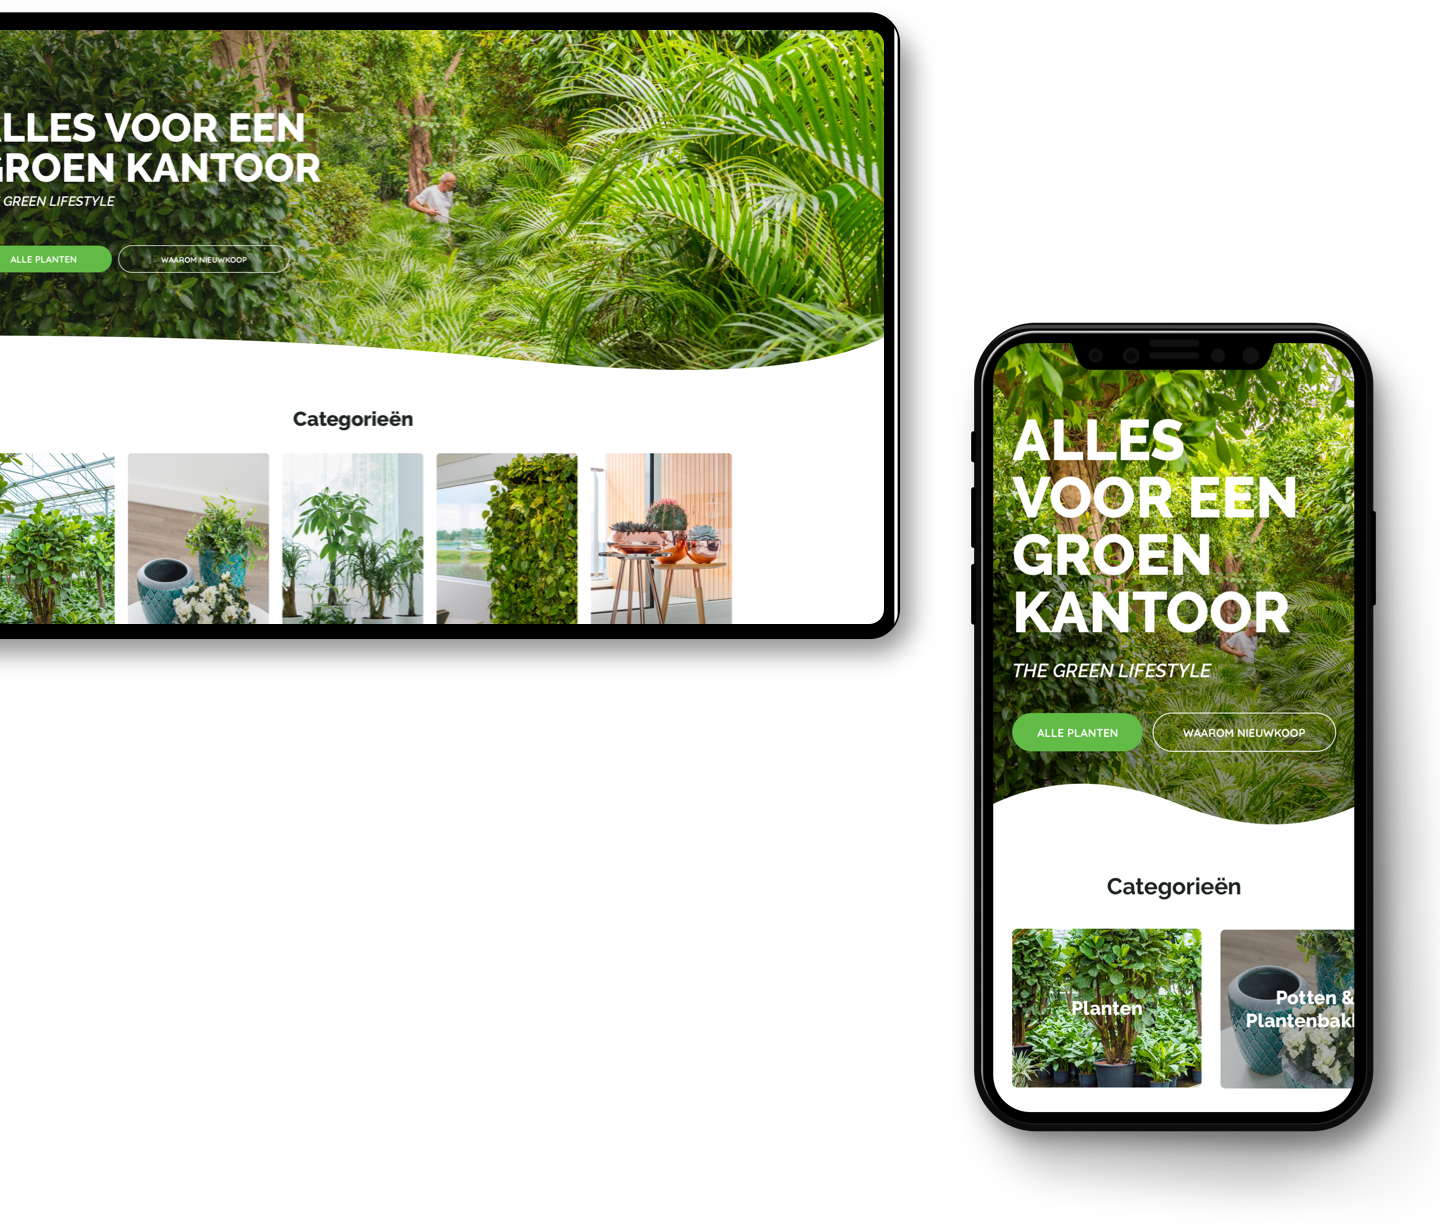 nieuwkoop-tablet-en-mobiel-application